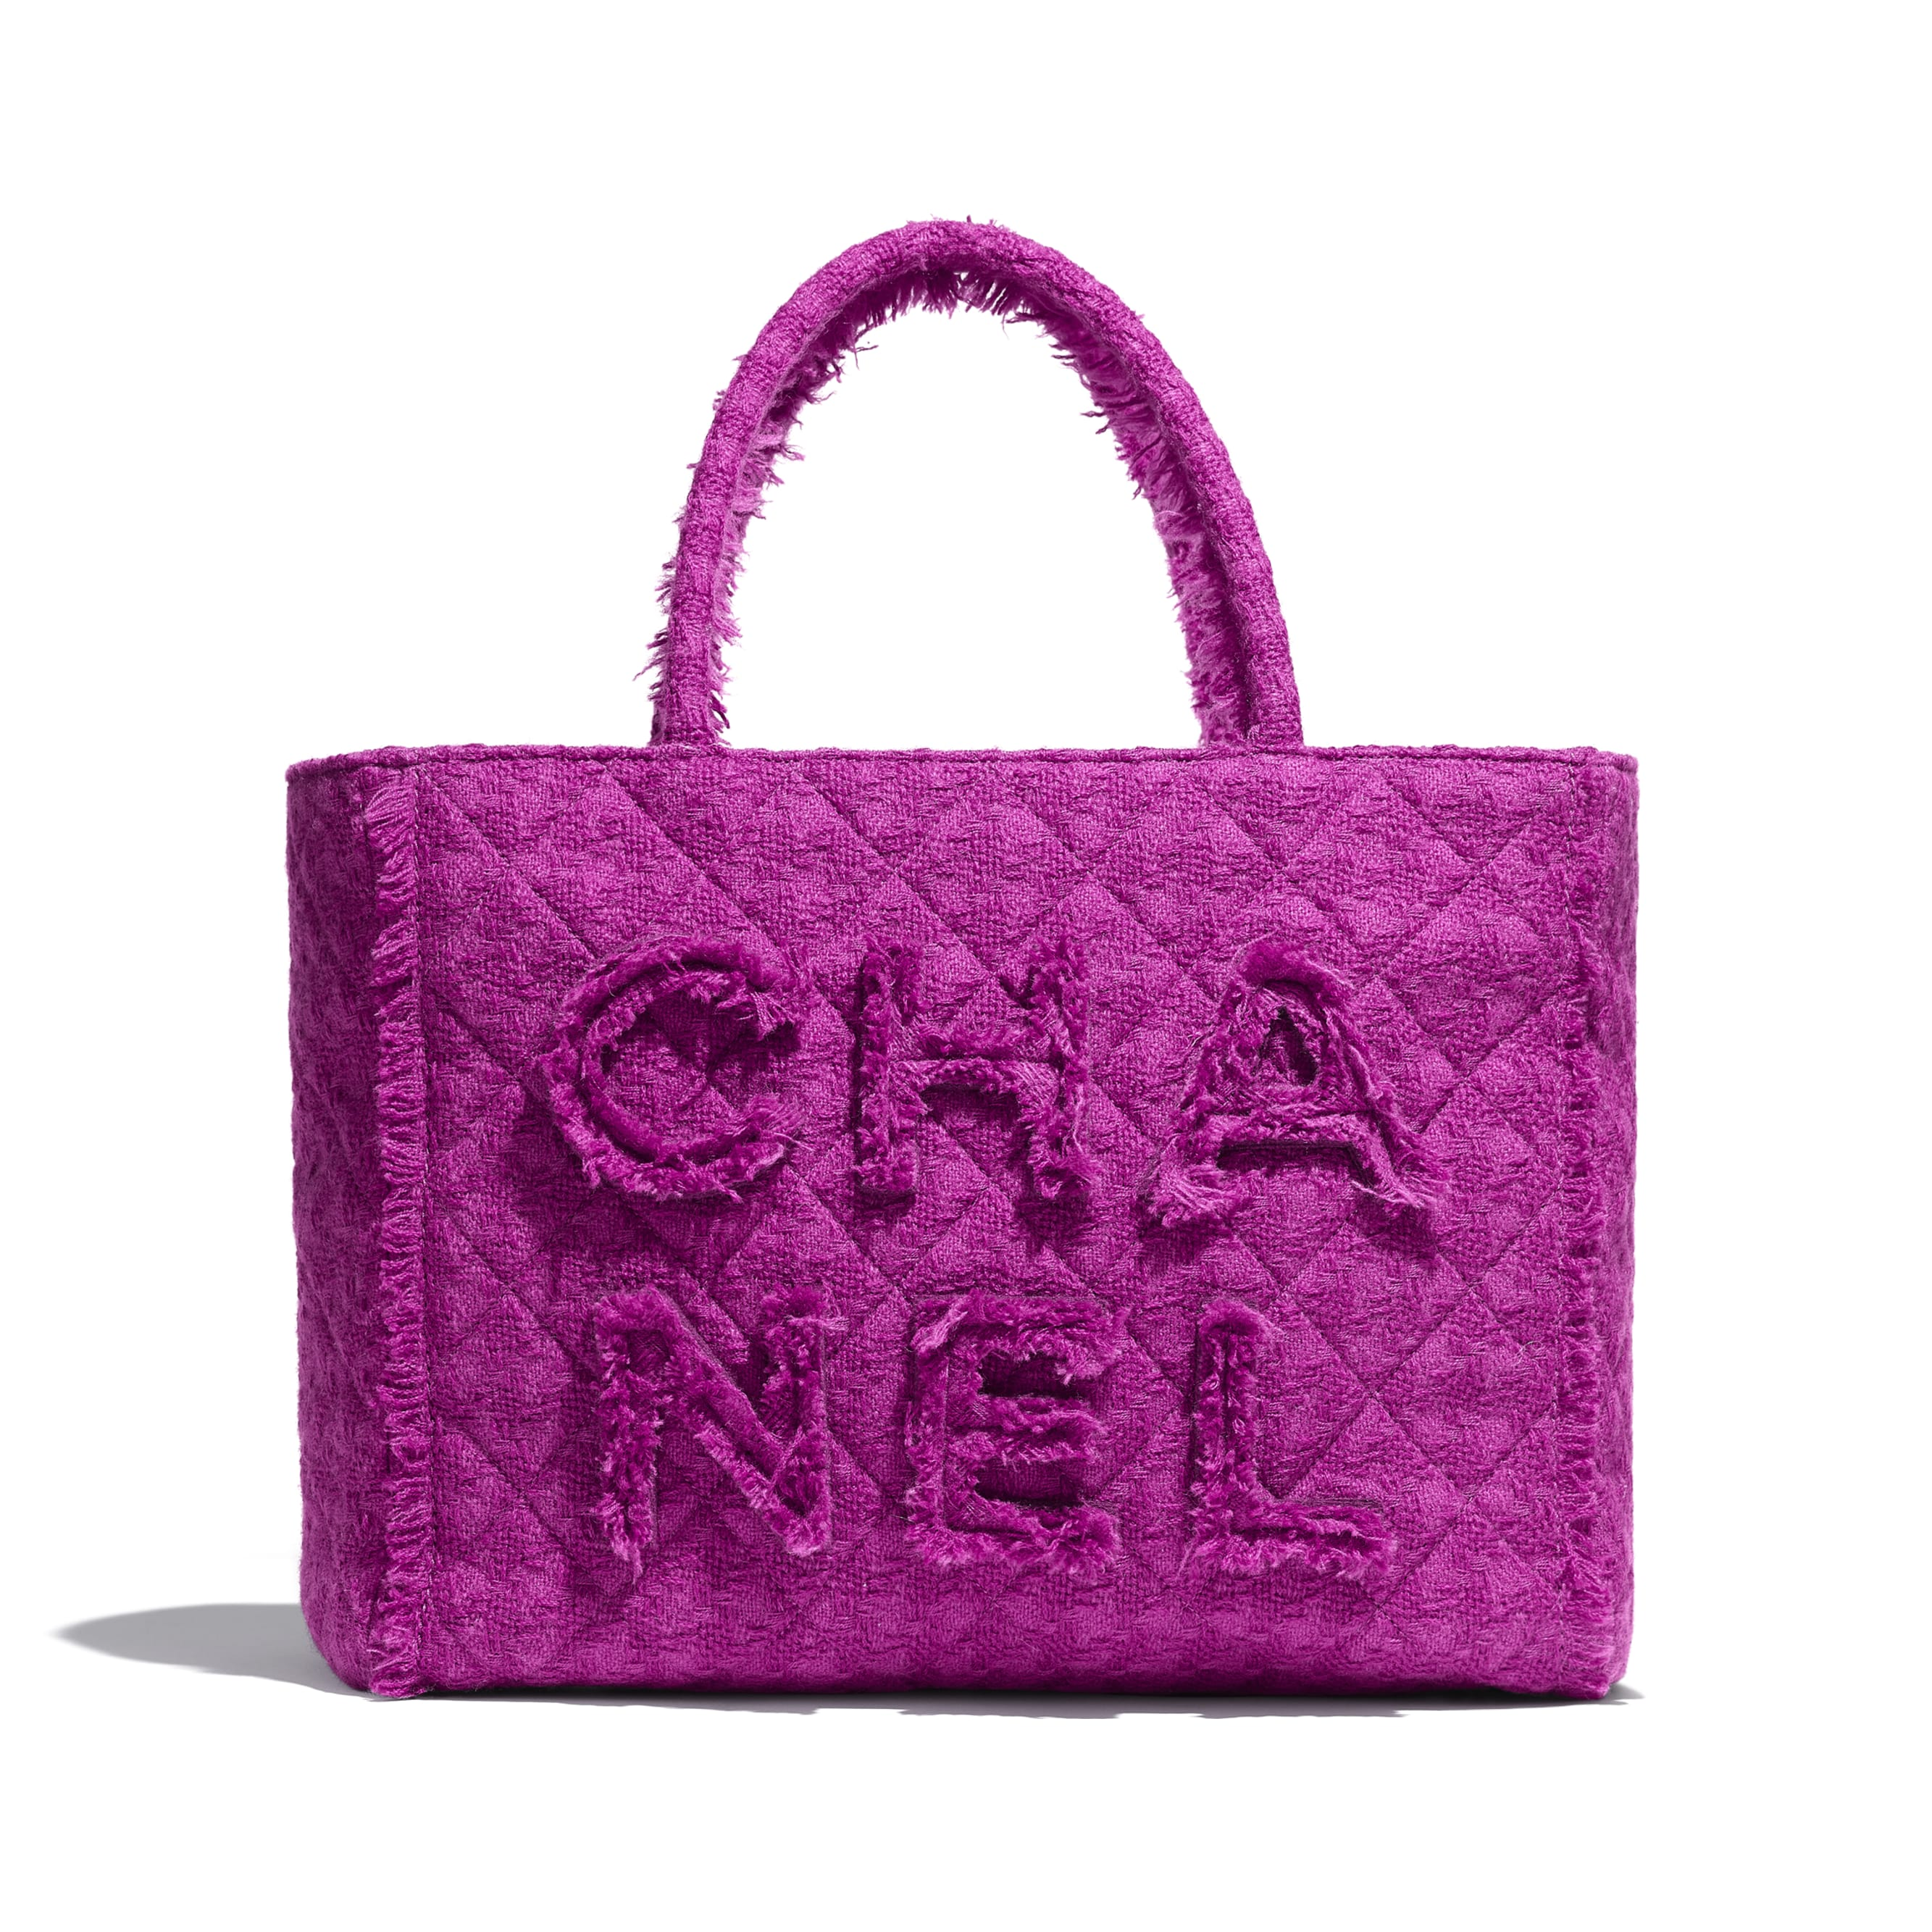 Large Zipped Tote - Fuchsia - Wool Tweed & Gold-Tone Metal - Default view - see standard sized version